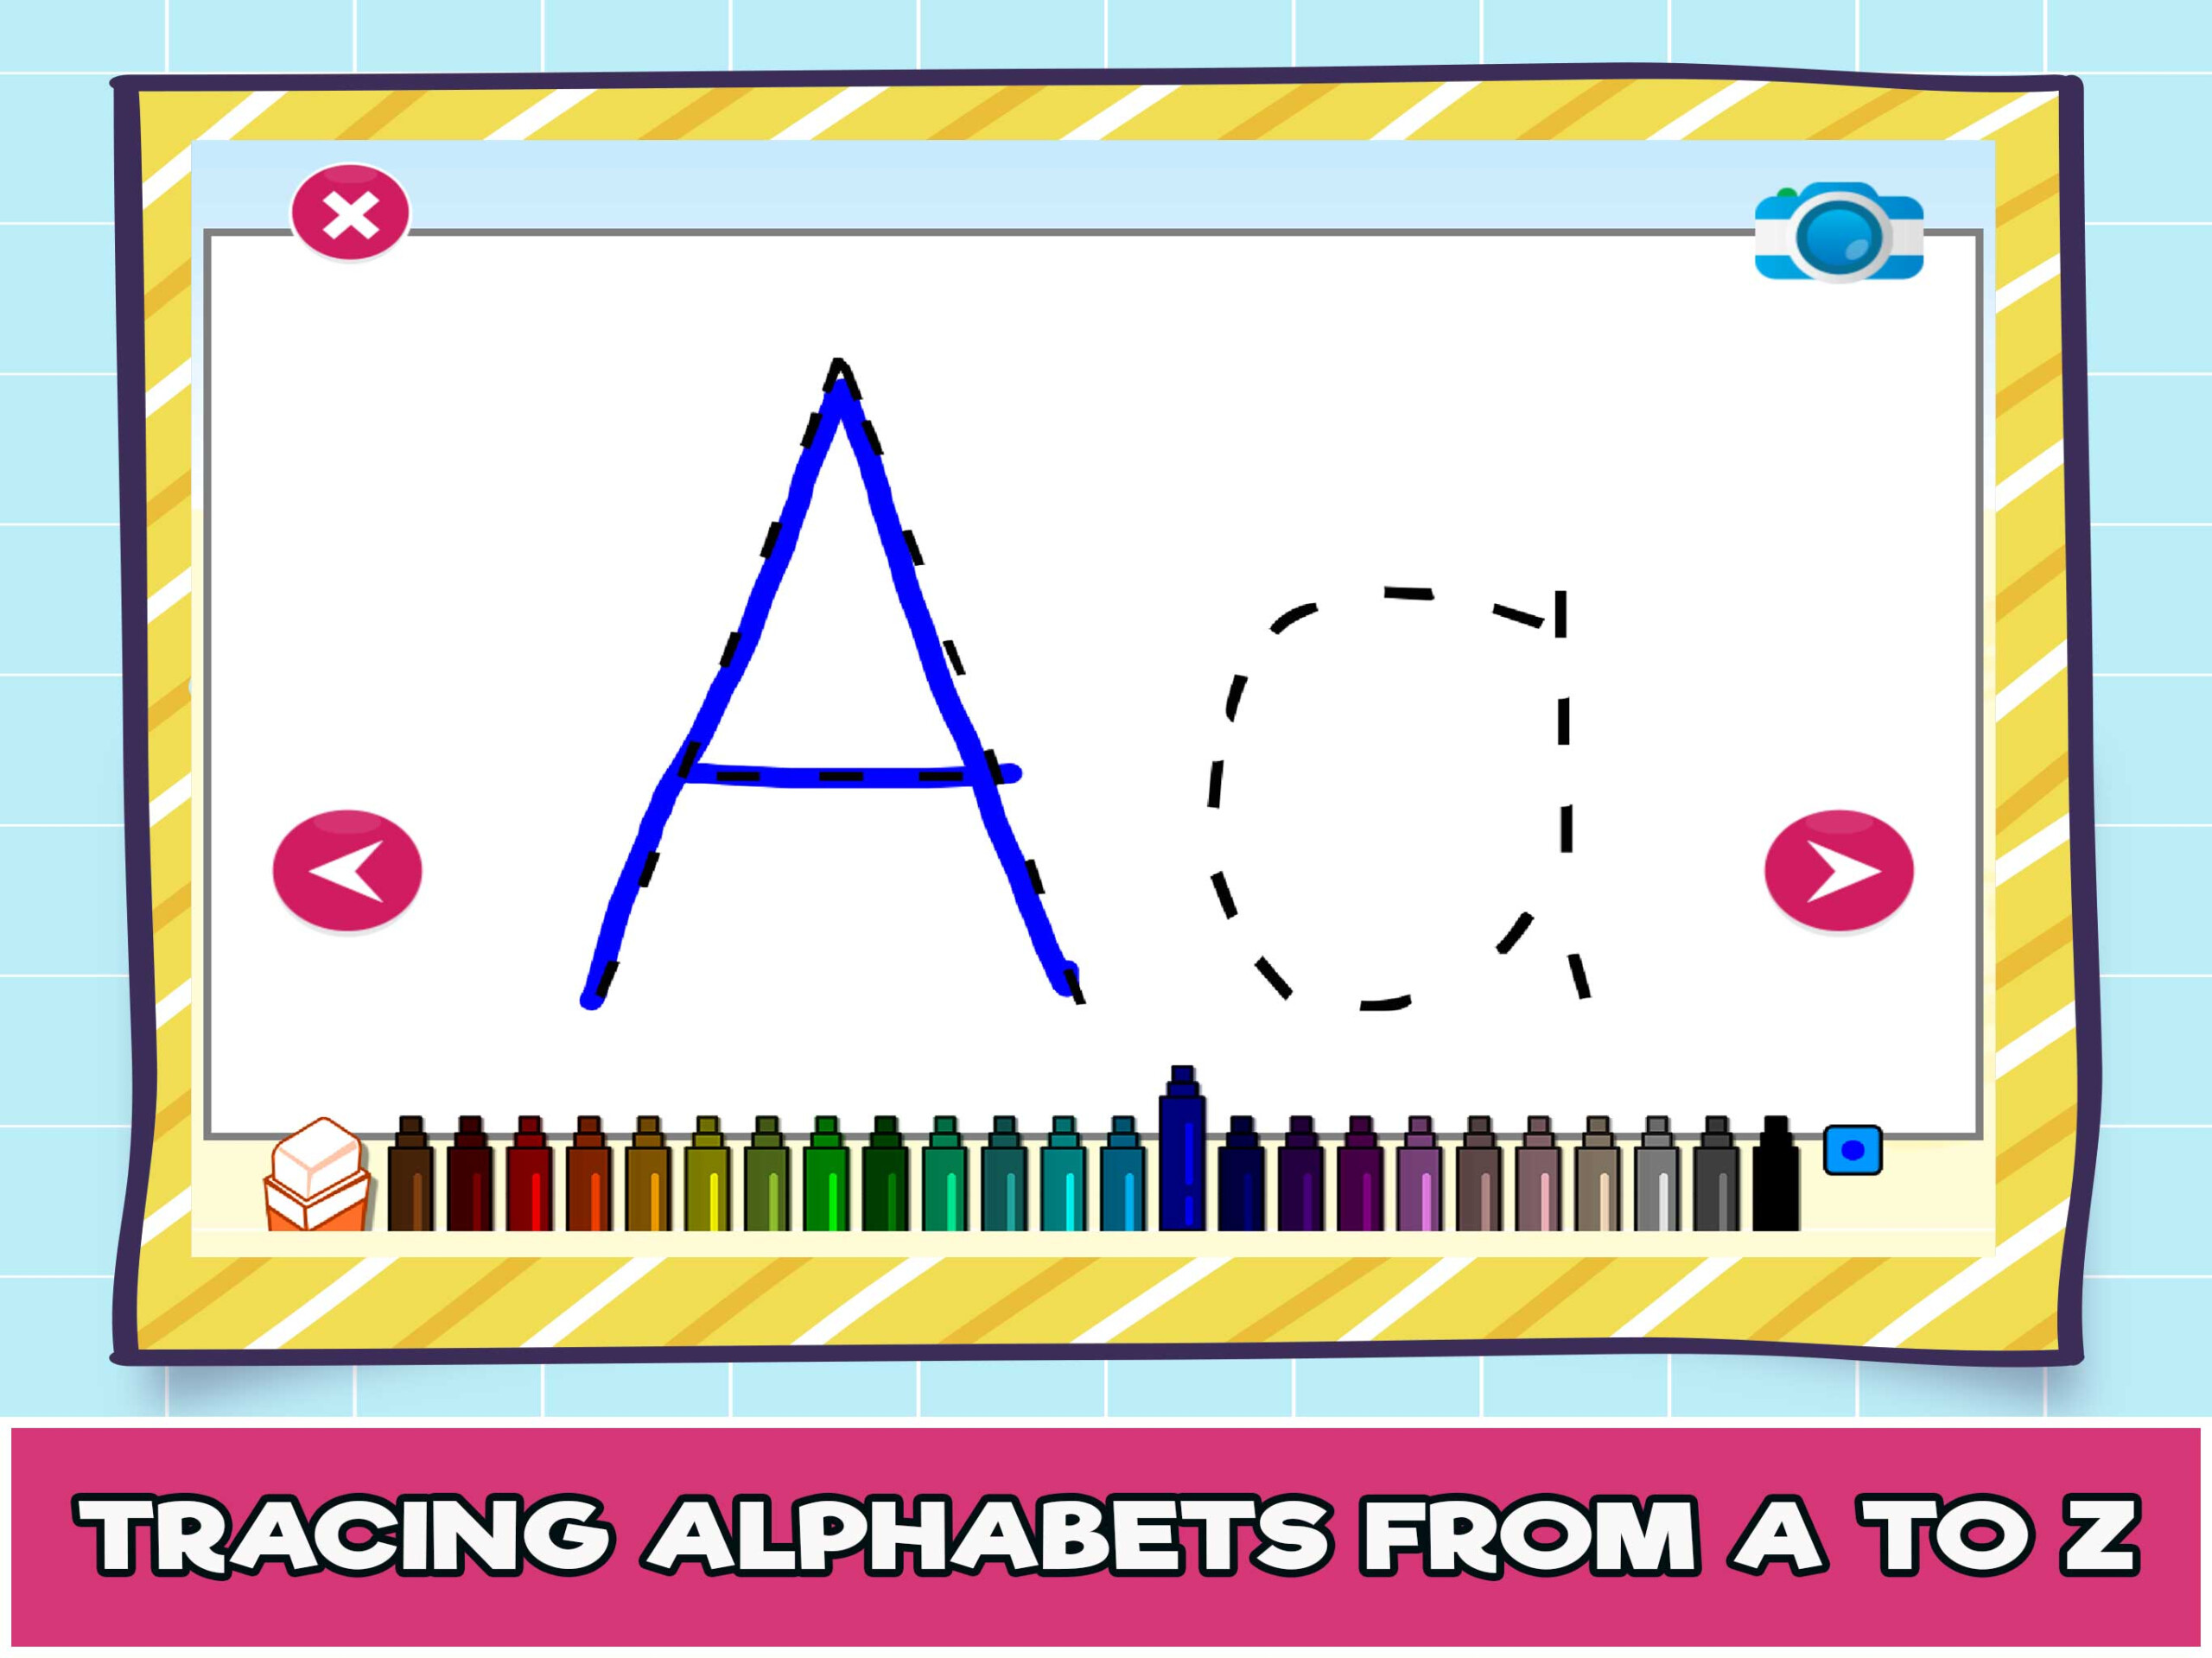 Free Online Alphabet Tracing Game For Kids - The Learning Apps regarding Tracing Letters Online Games